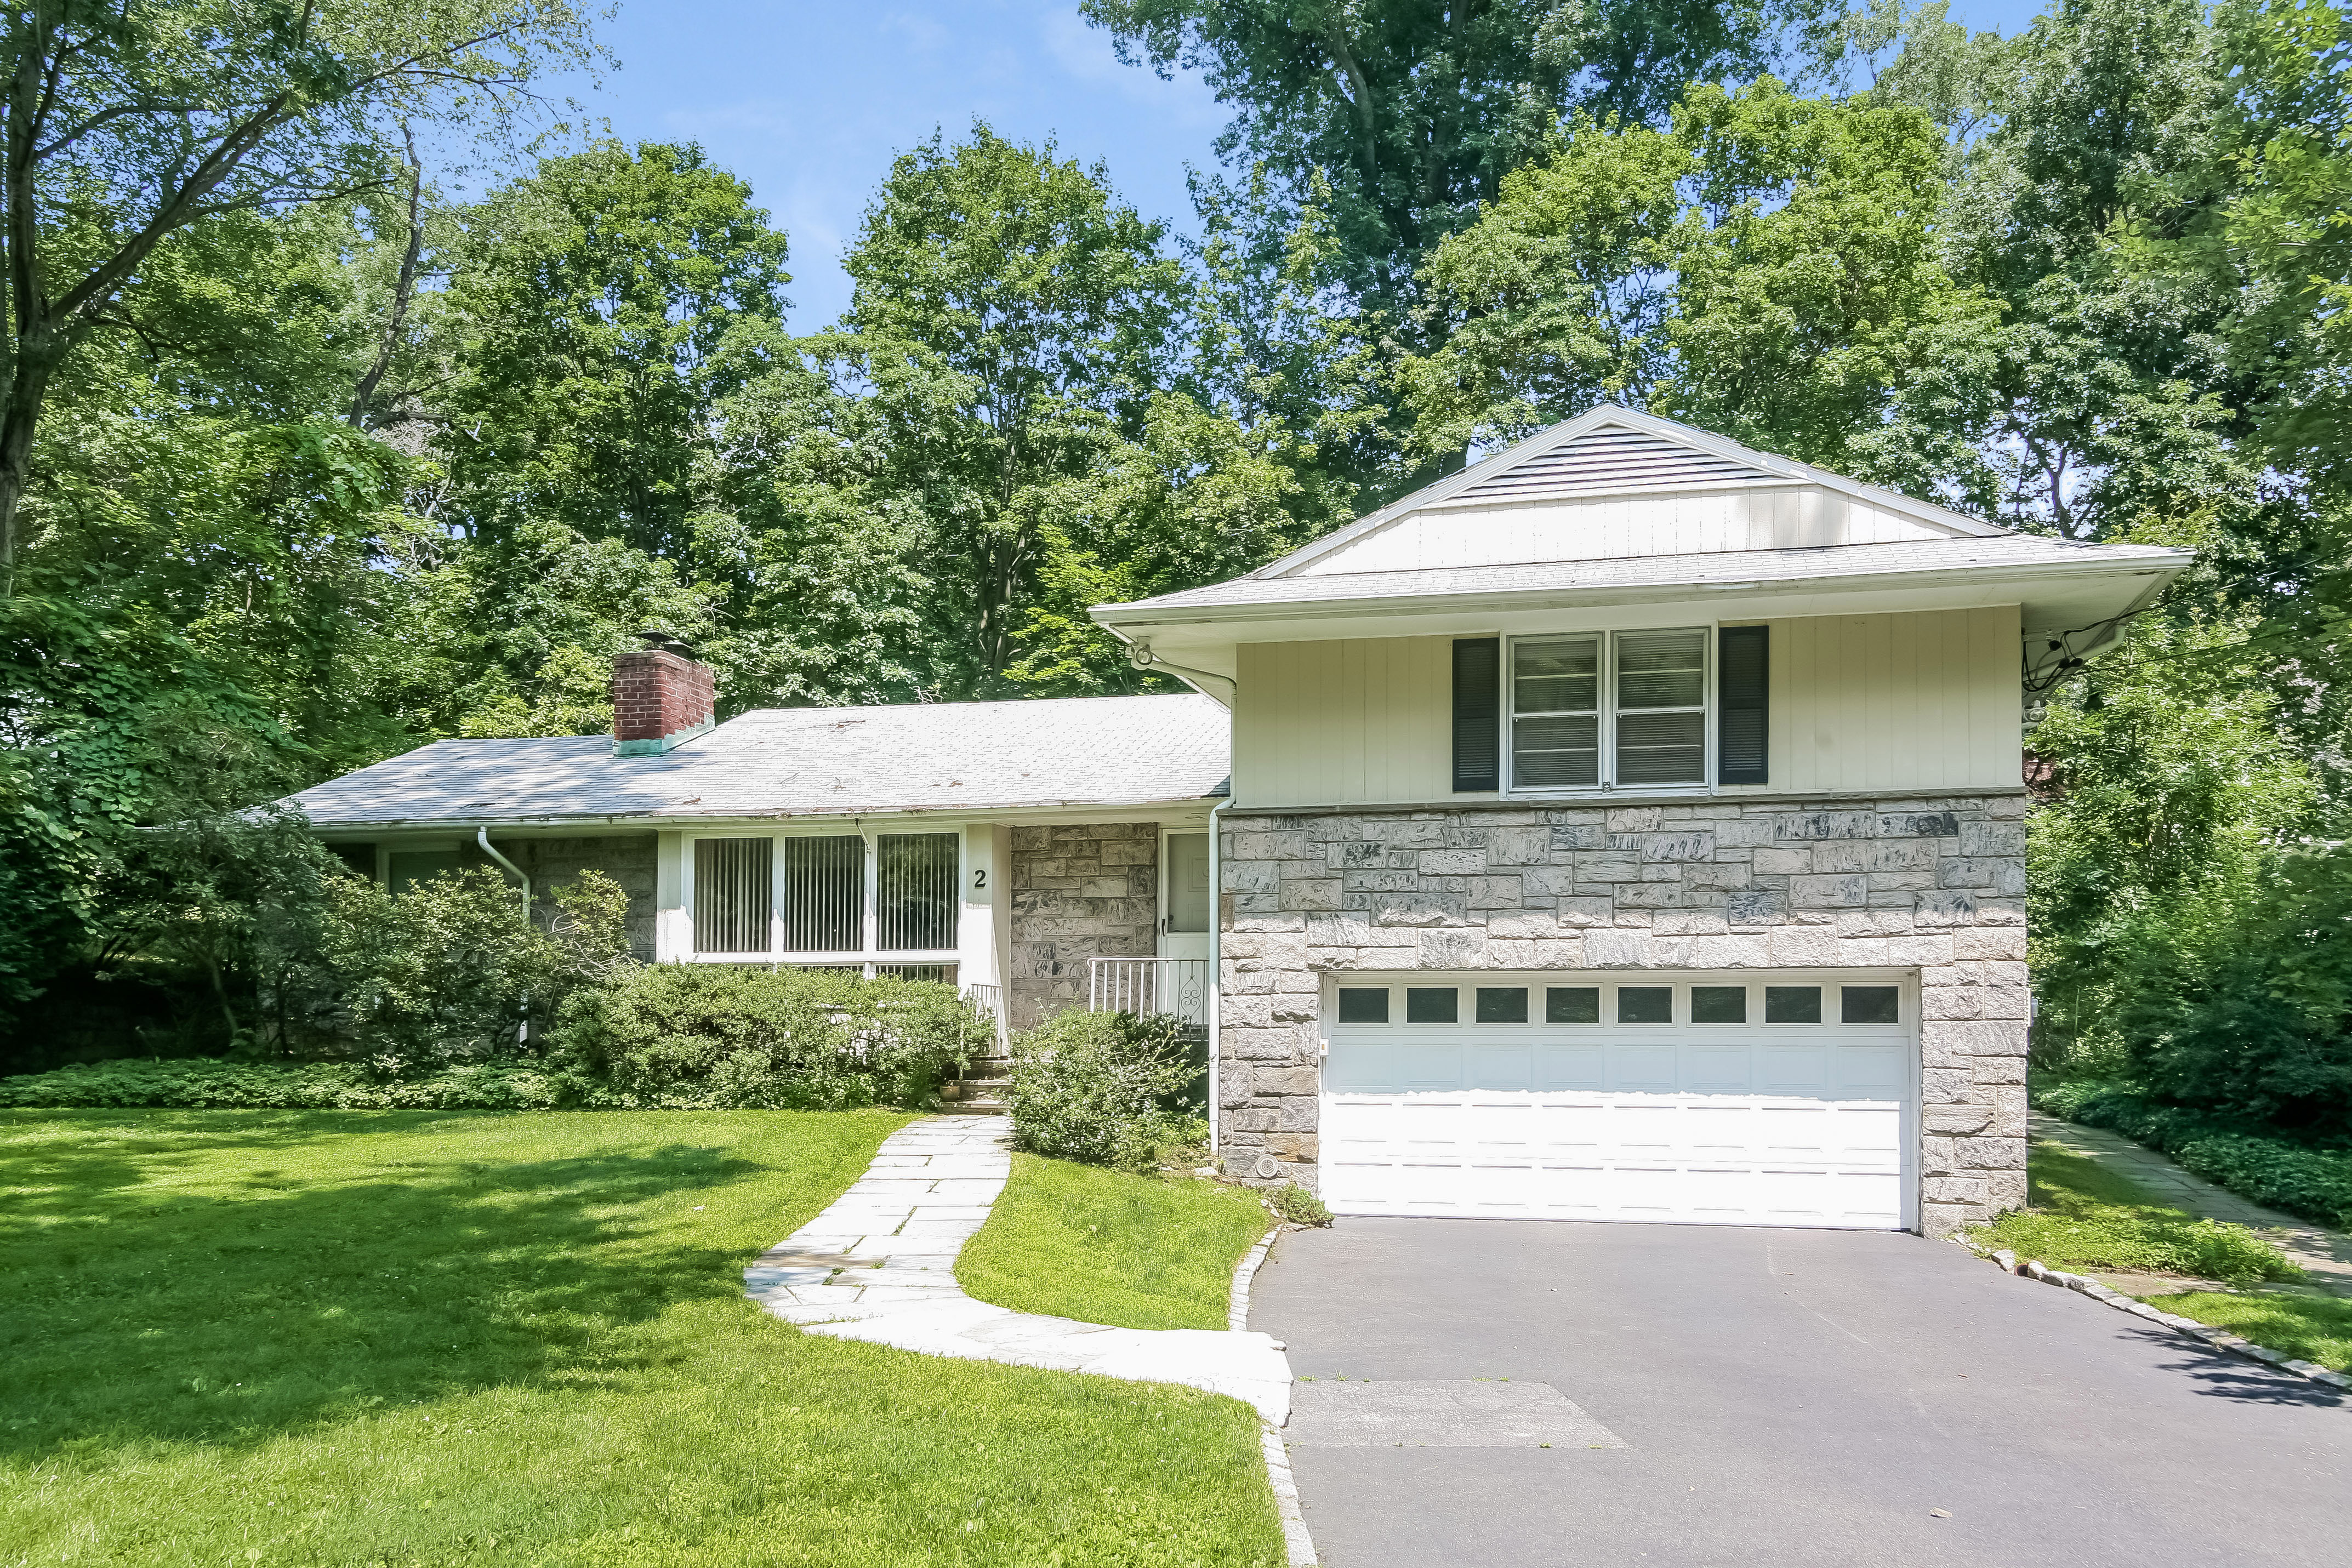 Single Family Home for Sale at Spacious Edgemont Home 2 Doris Drive Scarsdale, New York 10583 United States